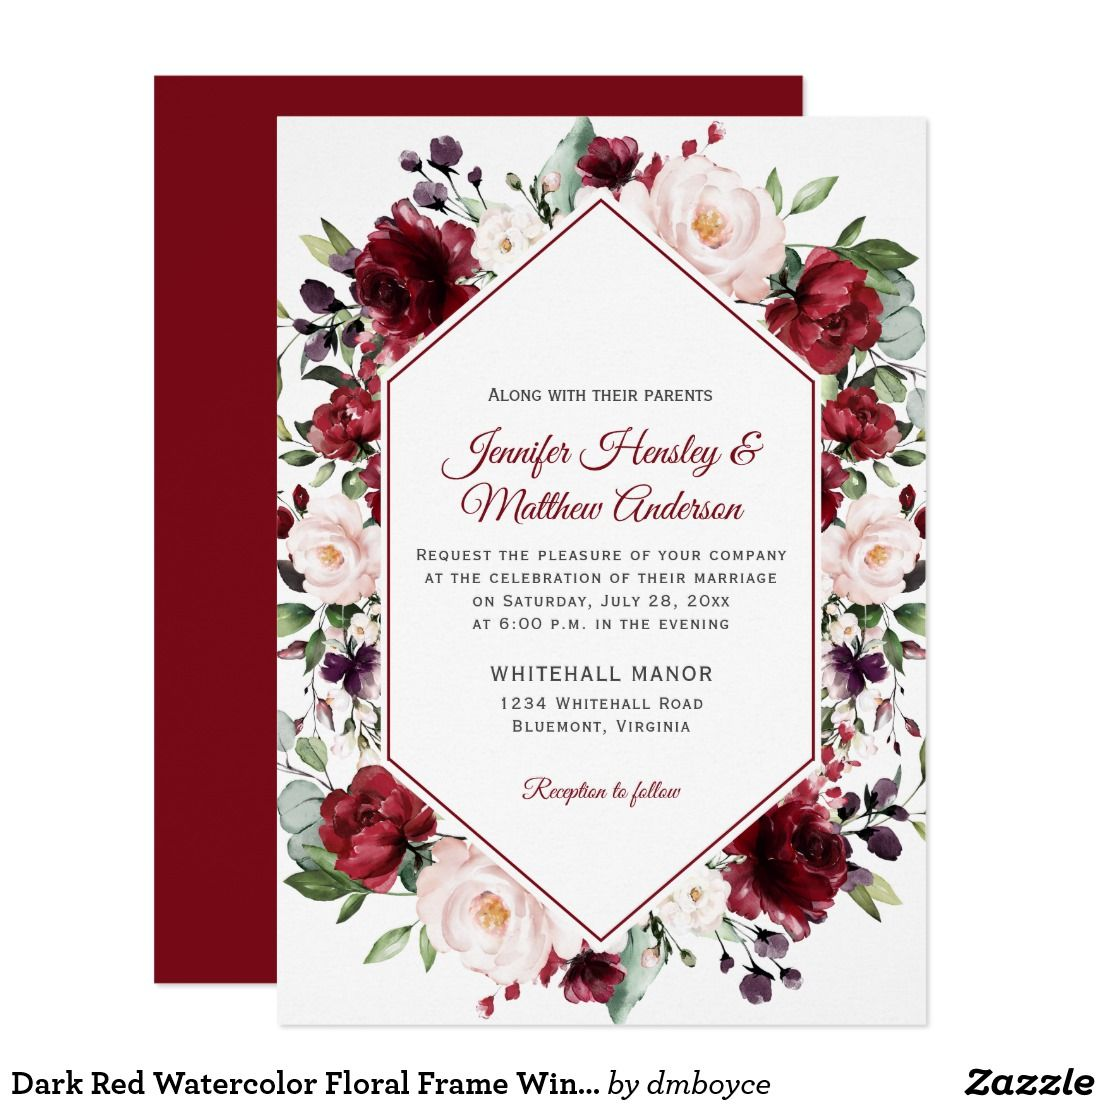 Dark Red Watercolor Floral Frame Winter Wedding Invitation